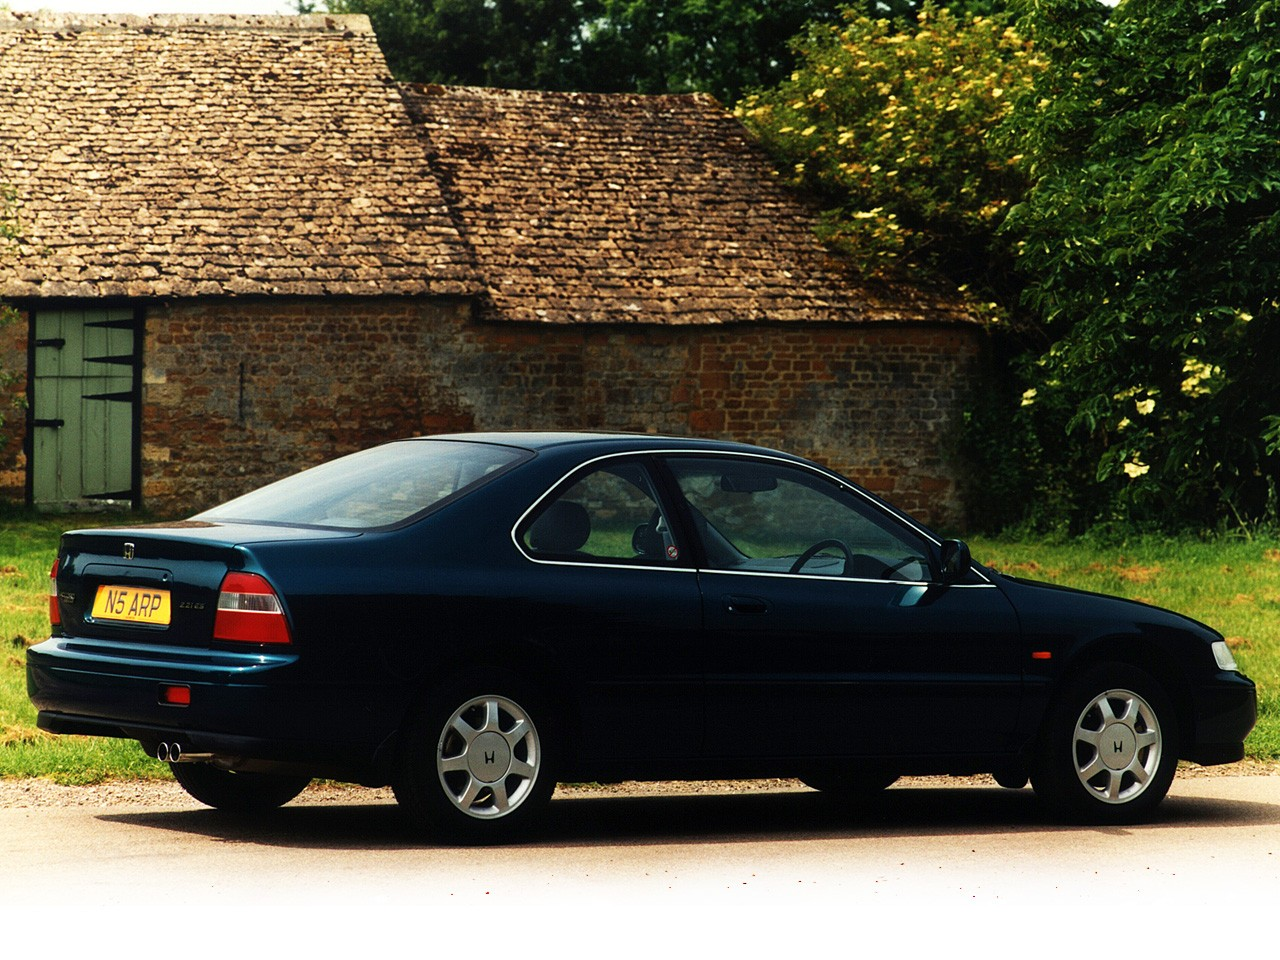 ... HONDA Accord Coupe (1994 - 1998) ...